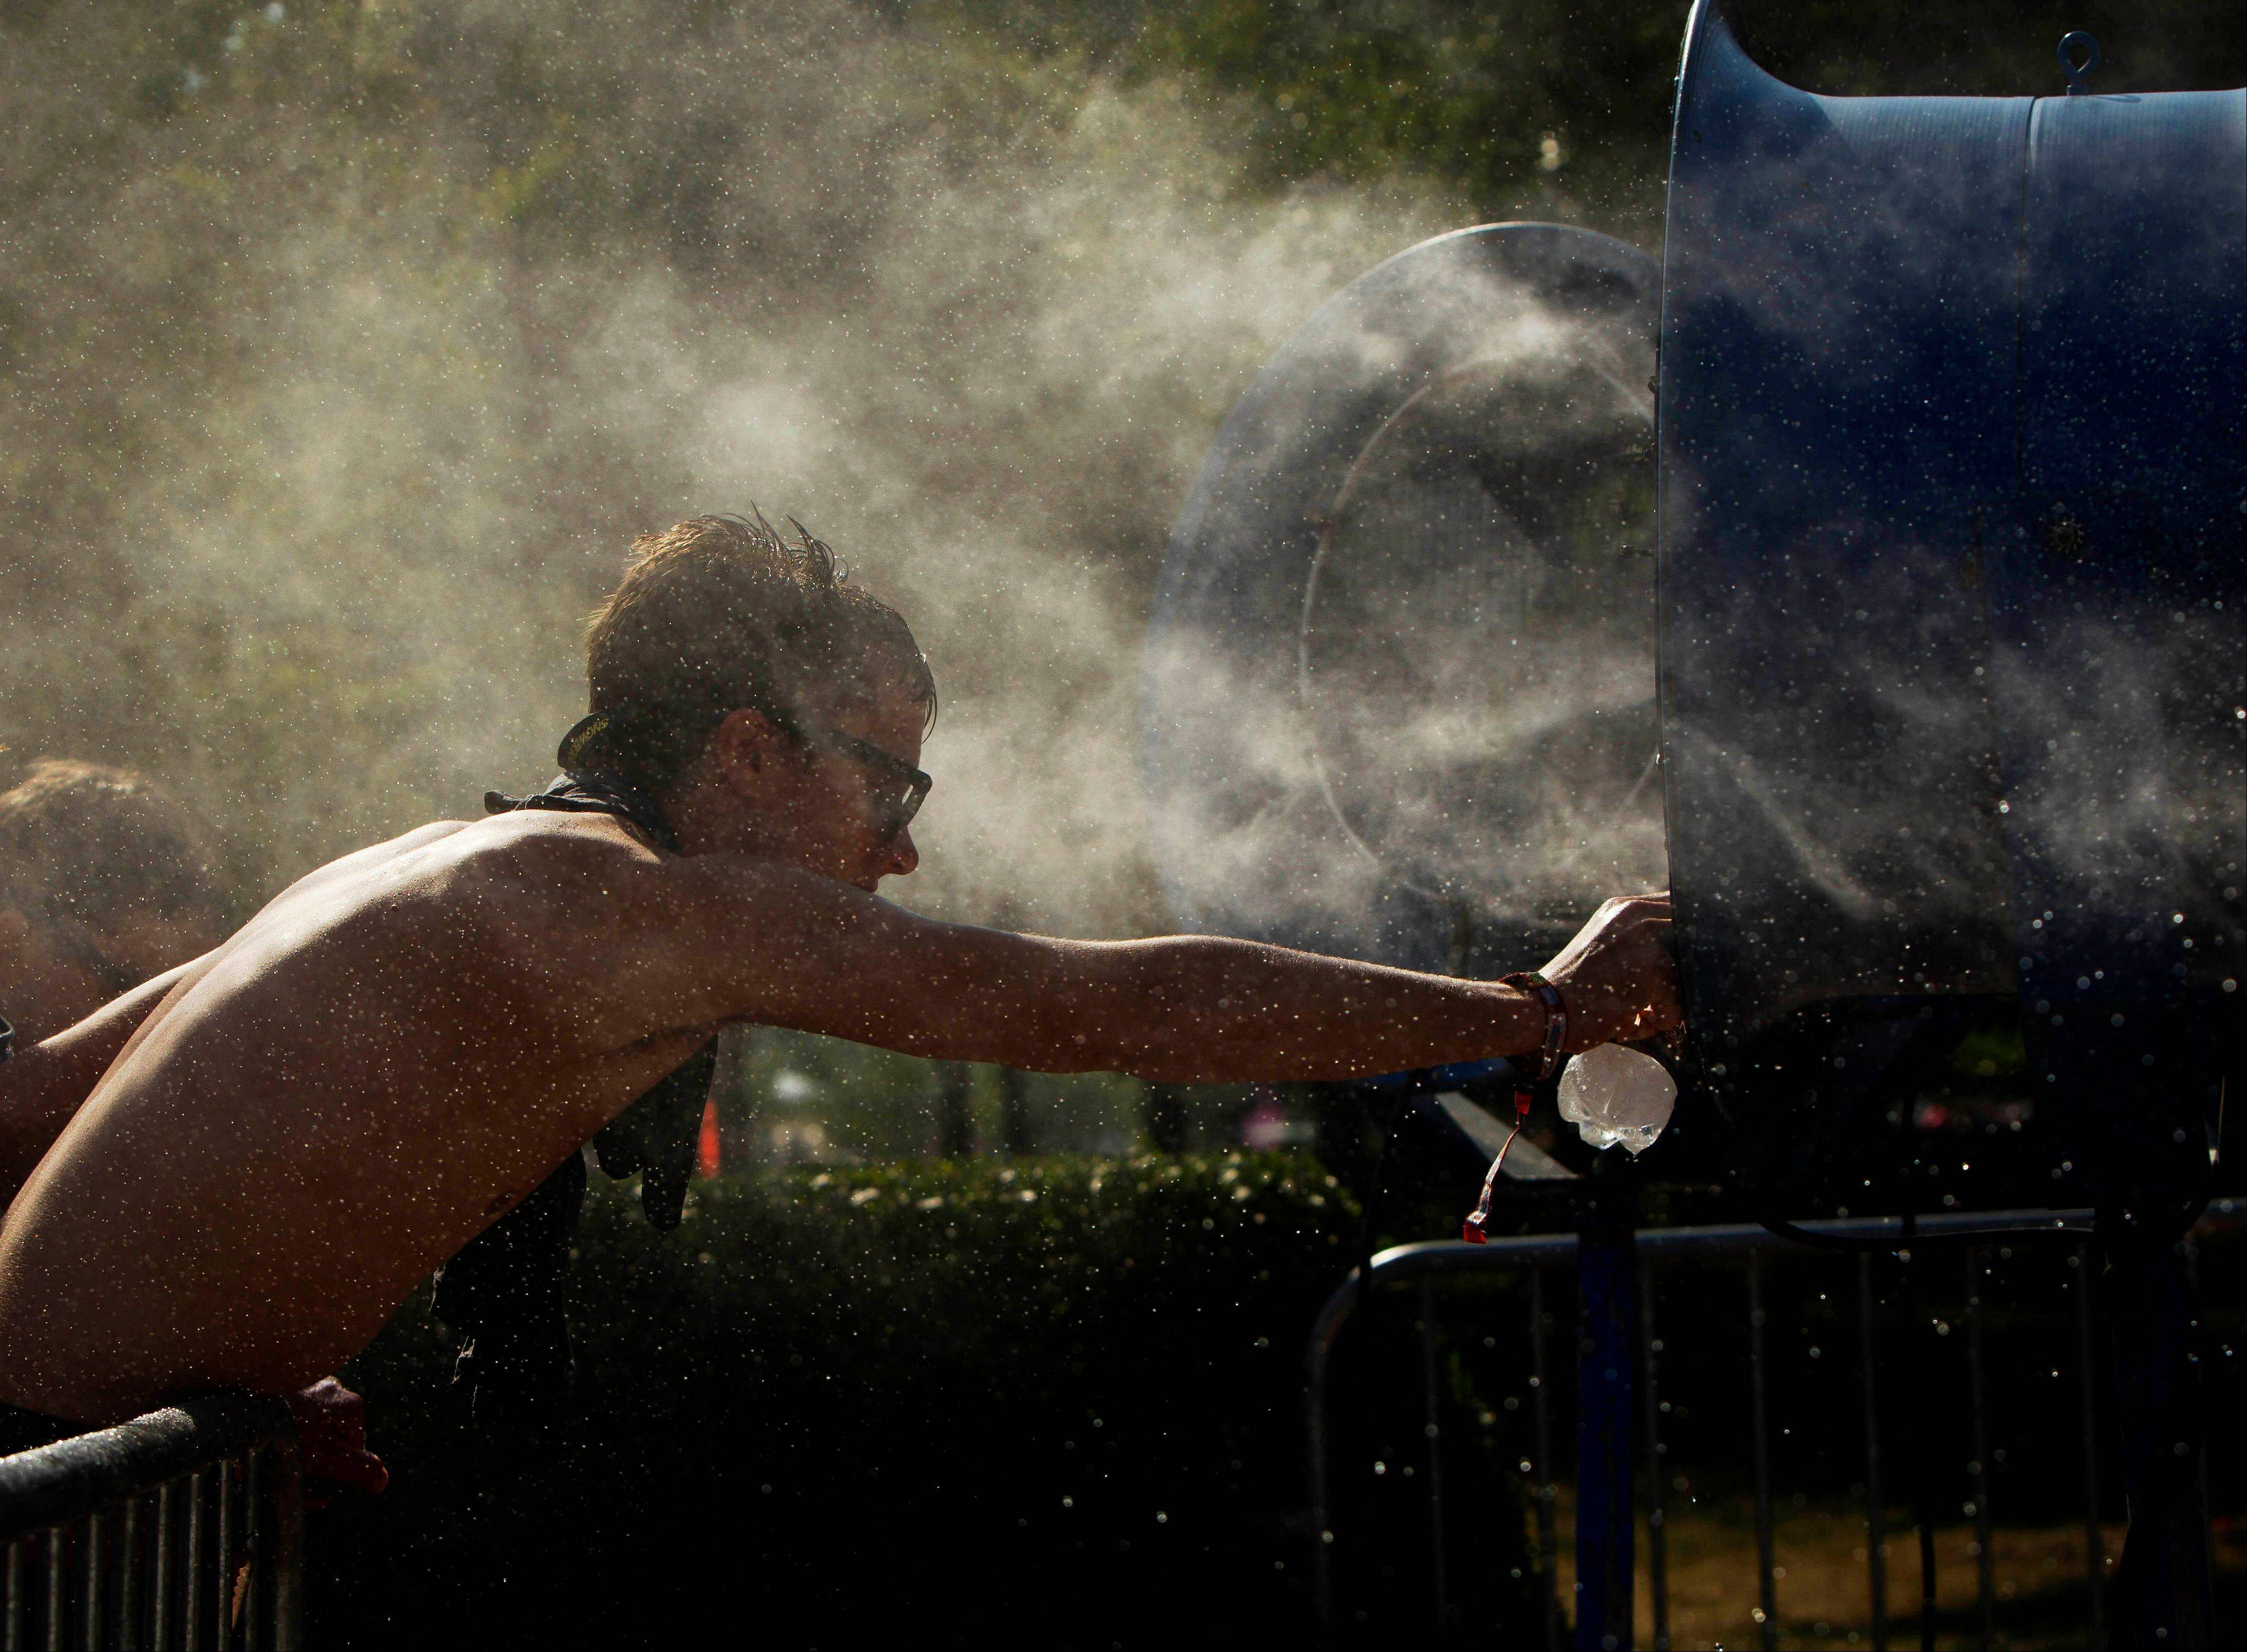 A man reaches to fill up his water bottle from a spray mist fan at Lollapalooza in Chicago's Grant Park on Friday, Aug. 3, 2012.